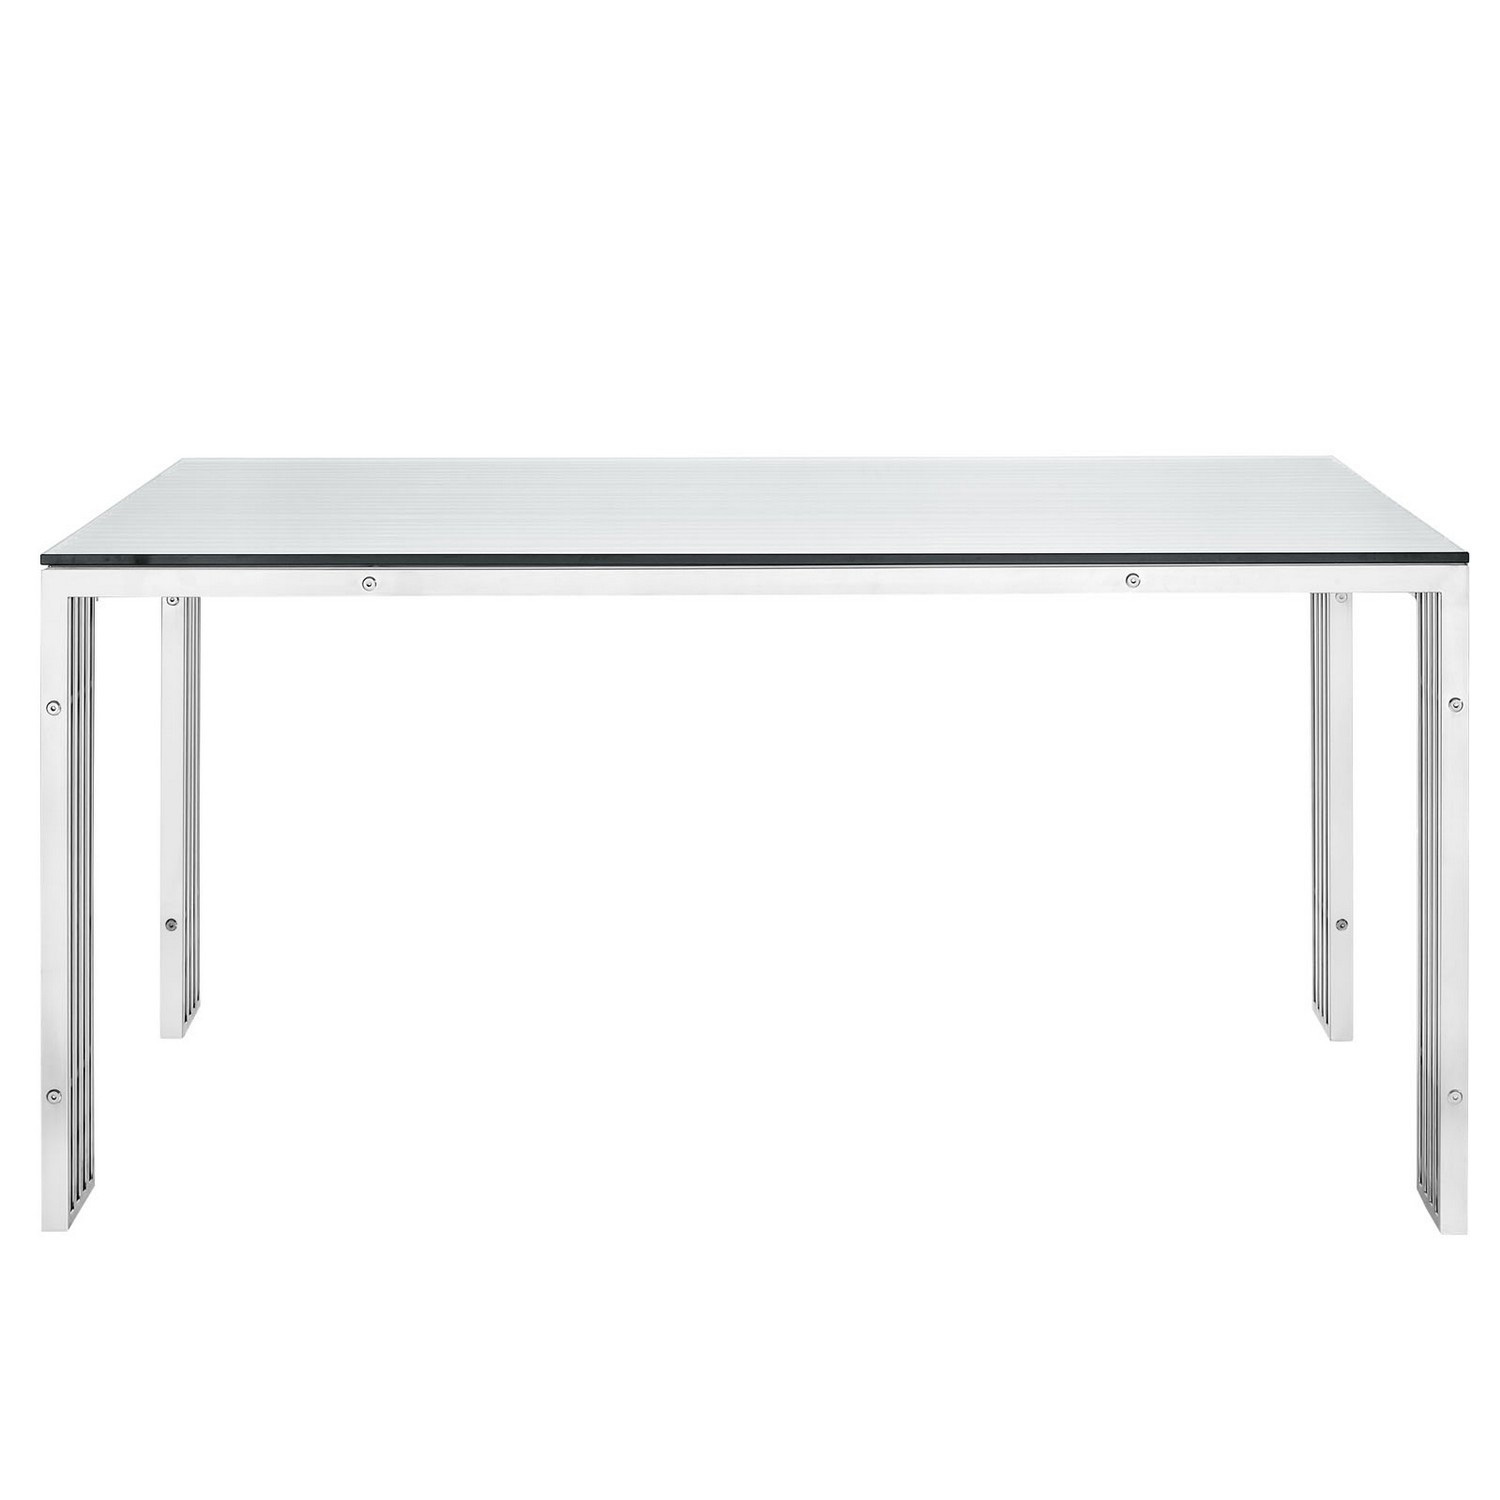 Modway Gridiron Stainless Steel Dining Table - Silver